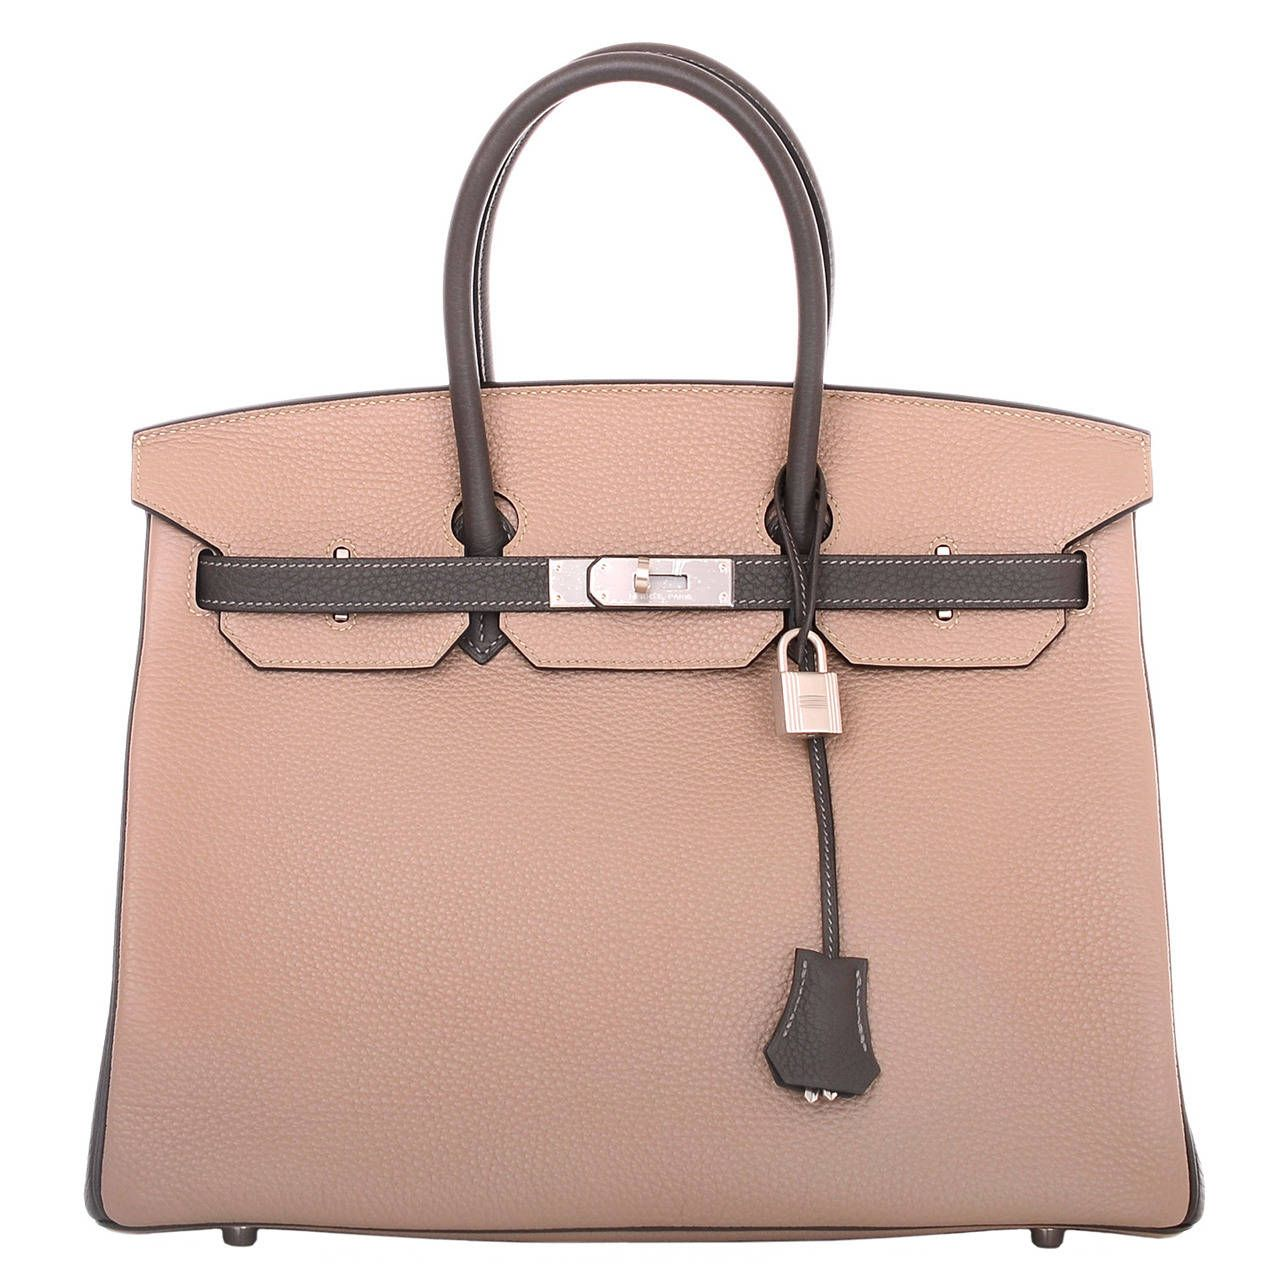 636d880553e9 Hermes Bi-color SO Horseshoe Etain and Gris Tourterelle Togo Birkin ...